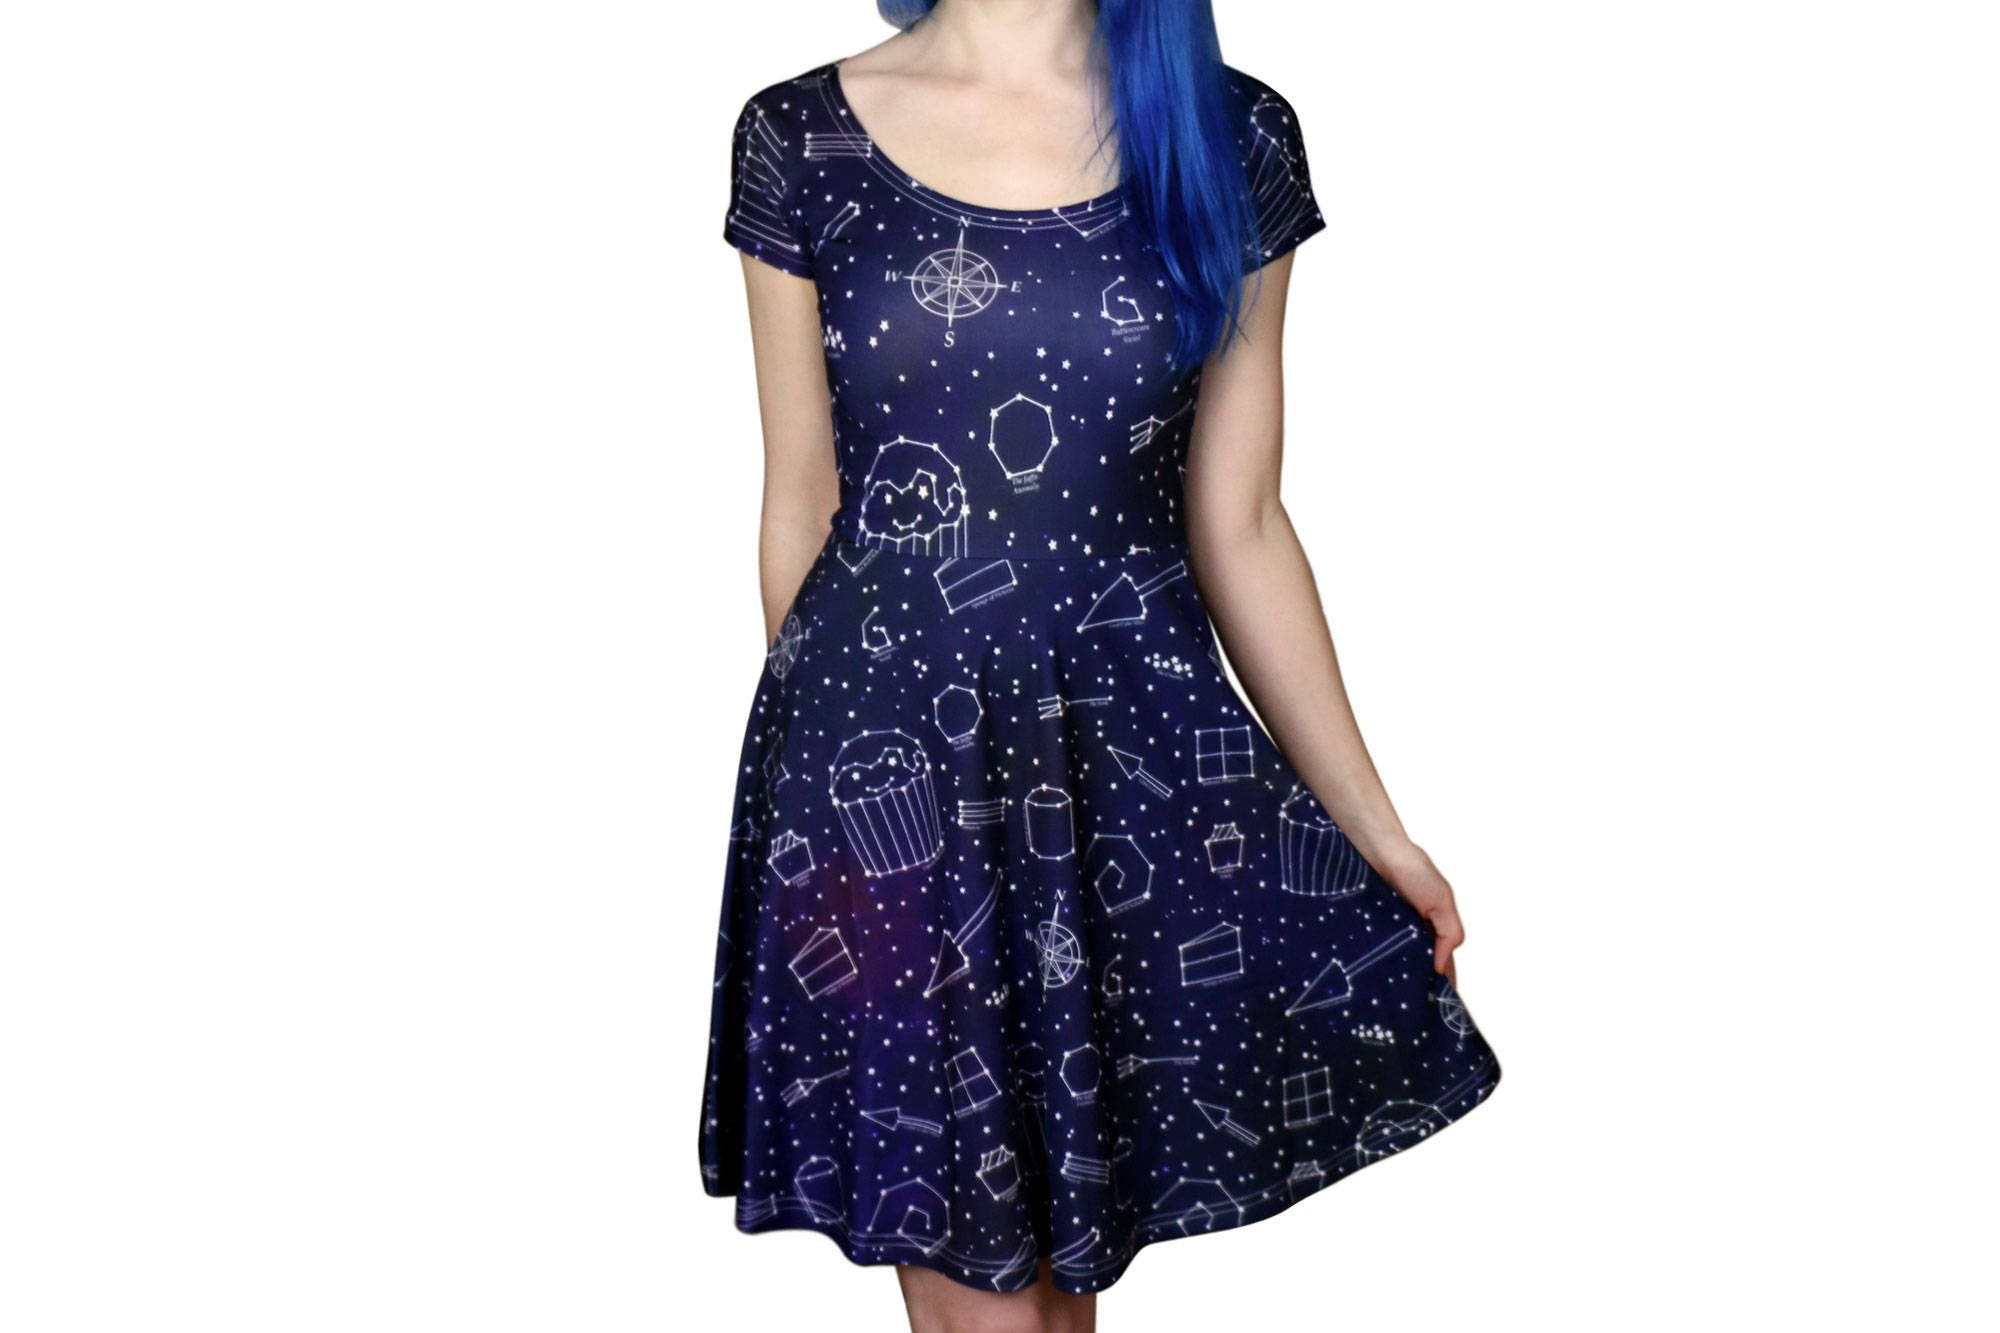 Starry Night Dress  Size 6 to 1820  Galaxy  Space  Stars Skater Dress  Party Dress  Dark blue  Dresses  Alternative Clothing